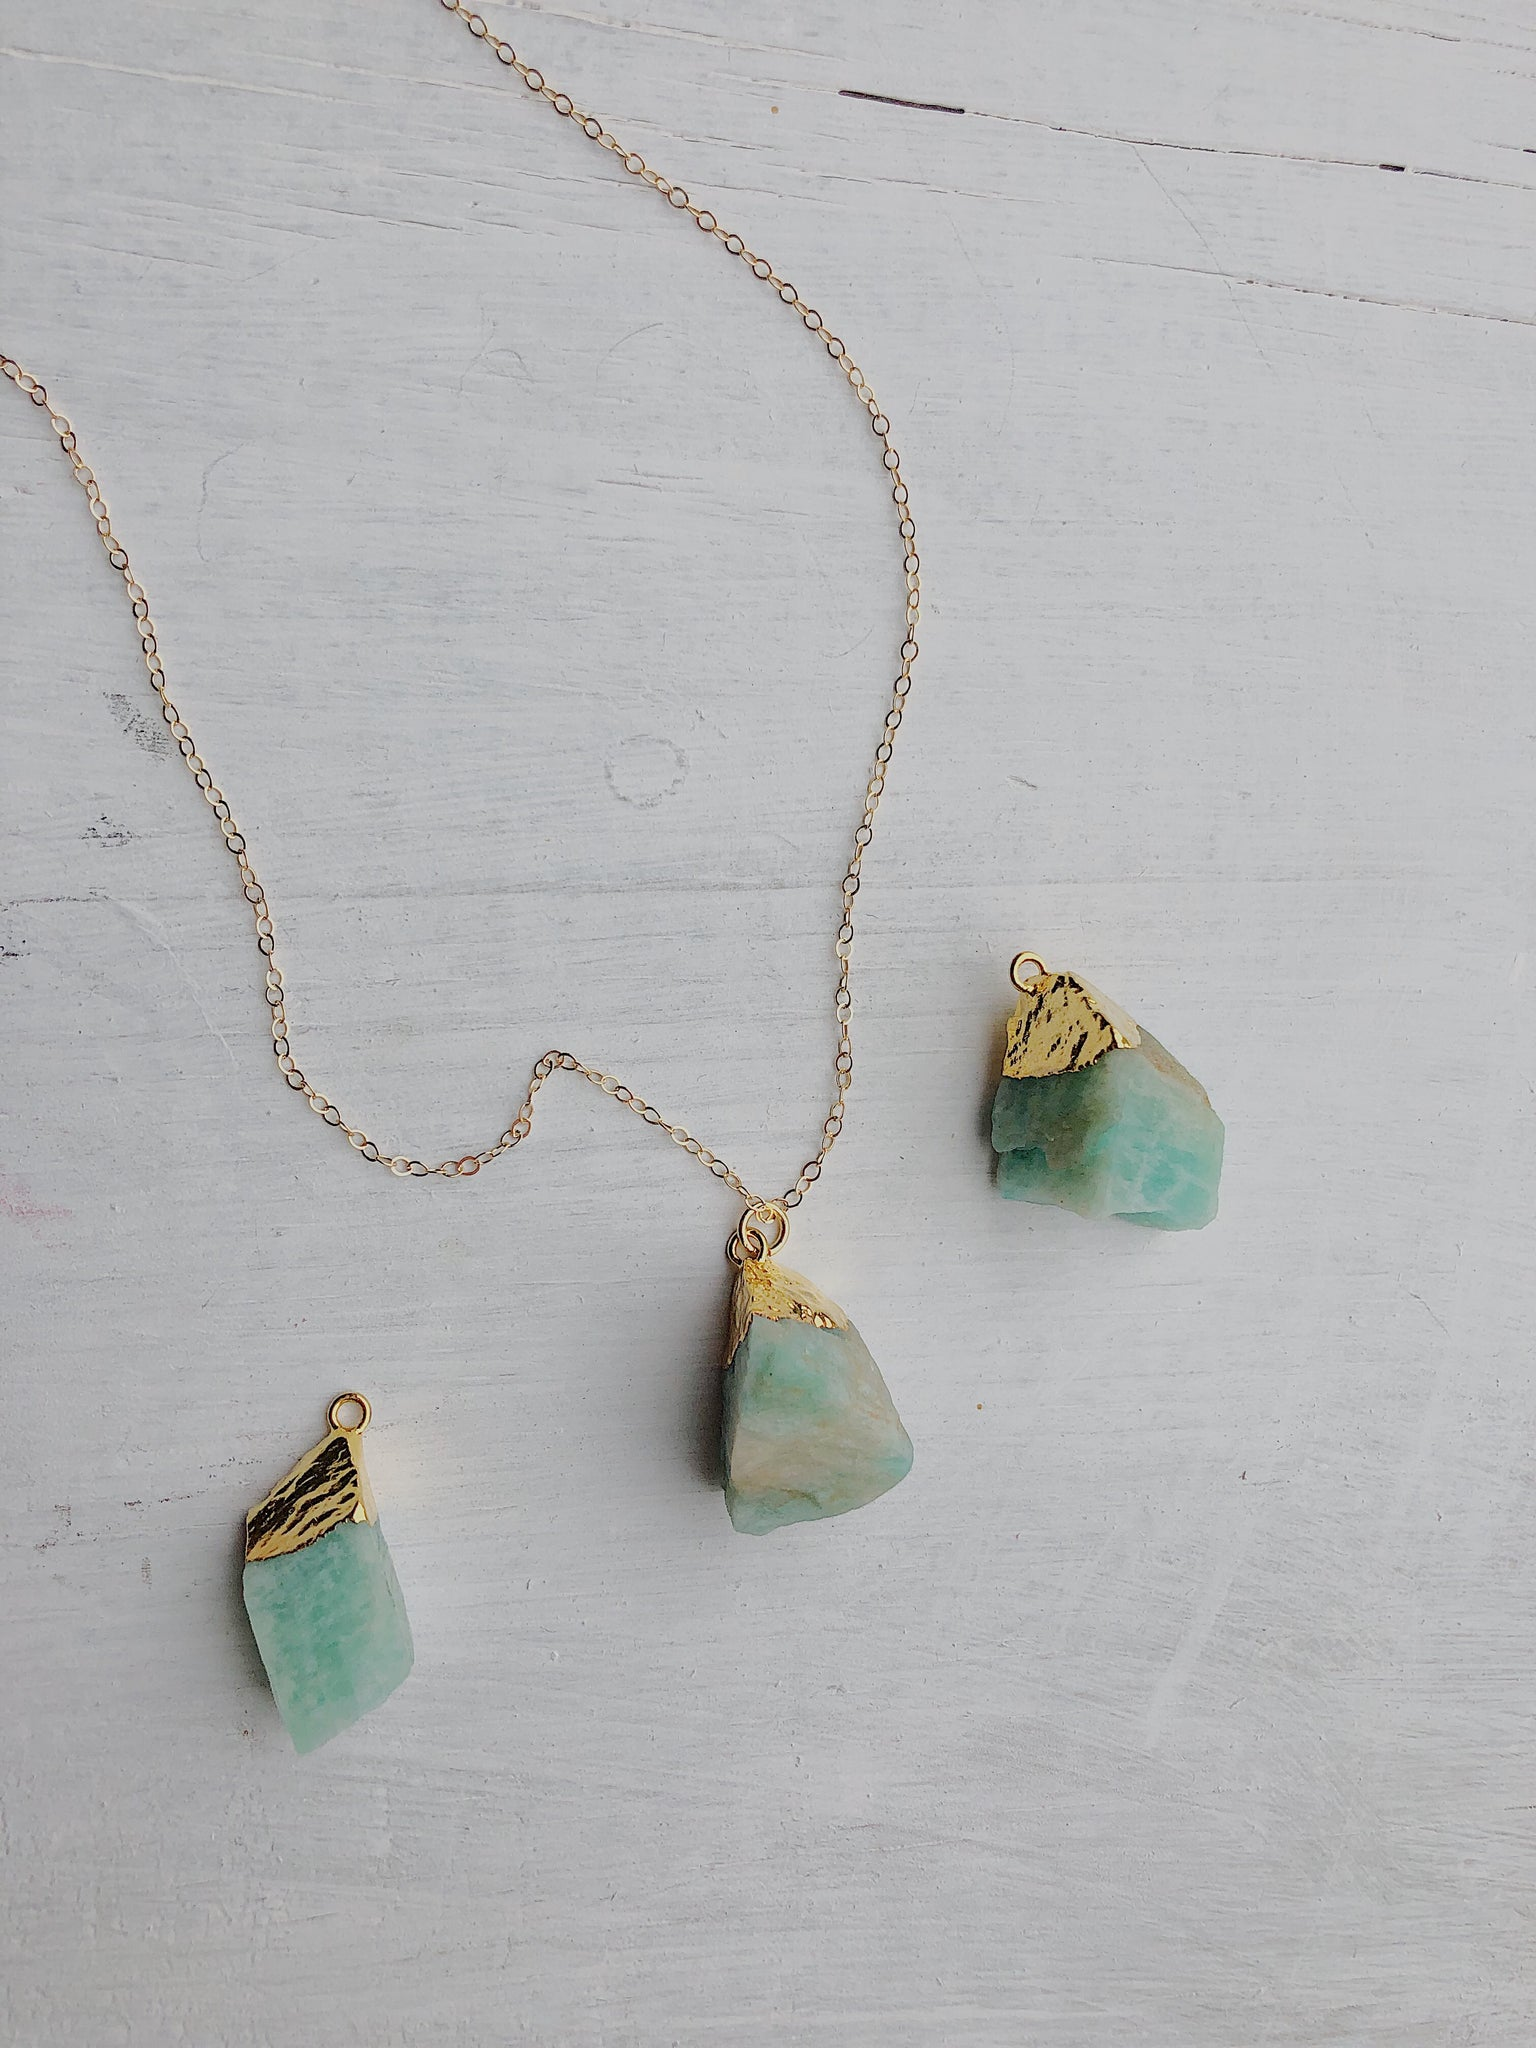 Sam Amazonite Necklace